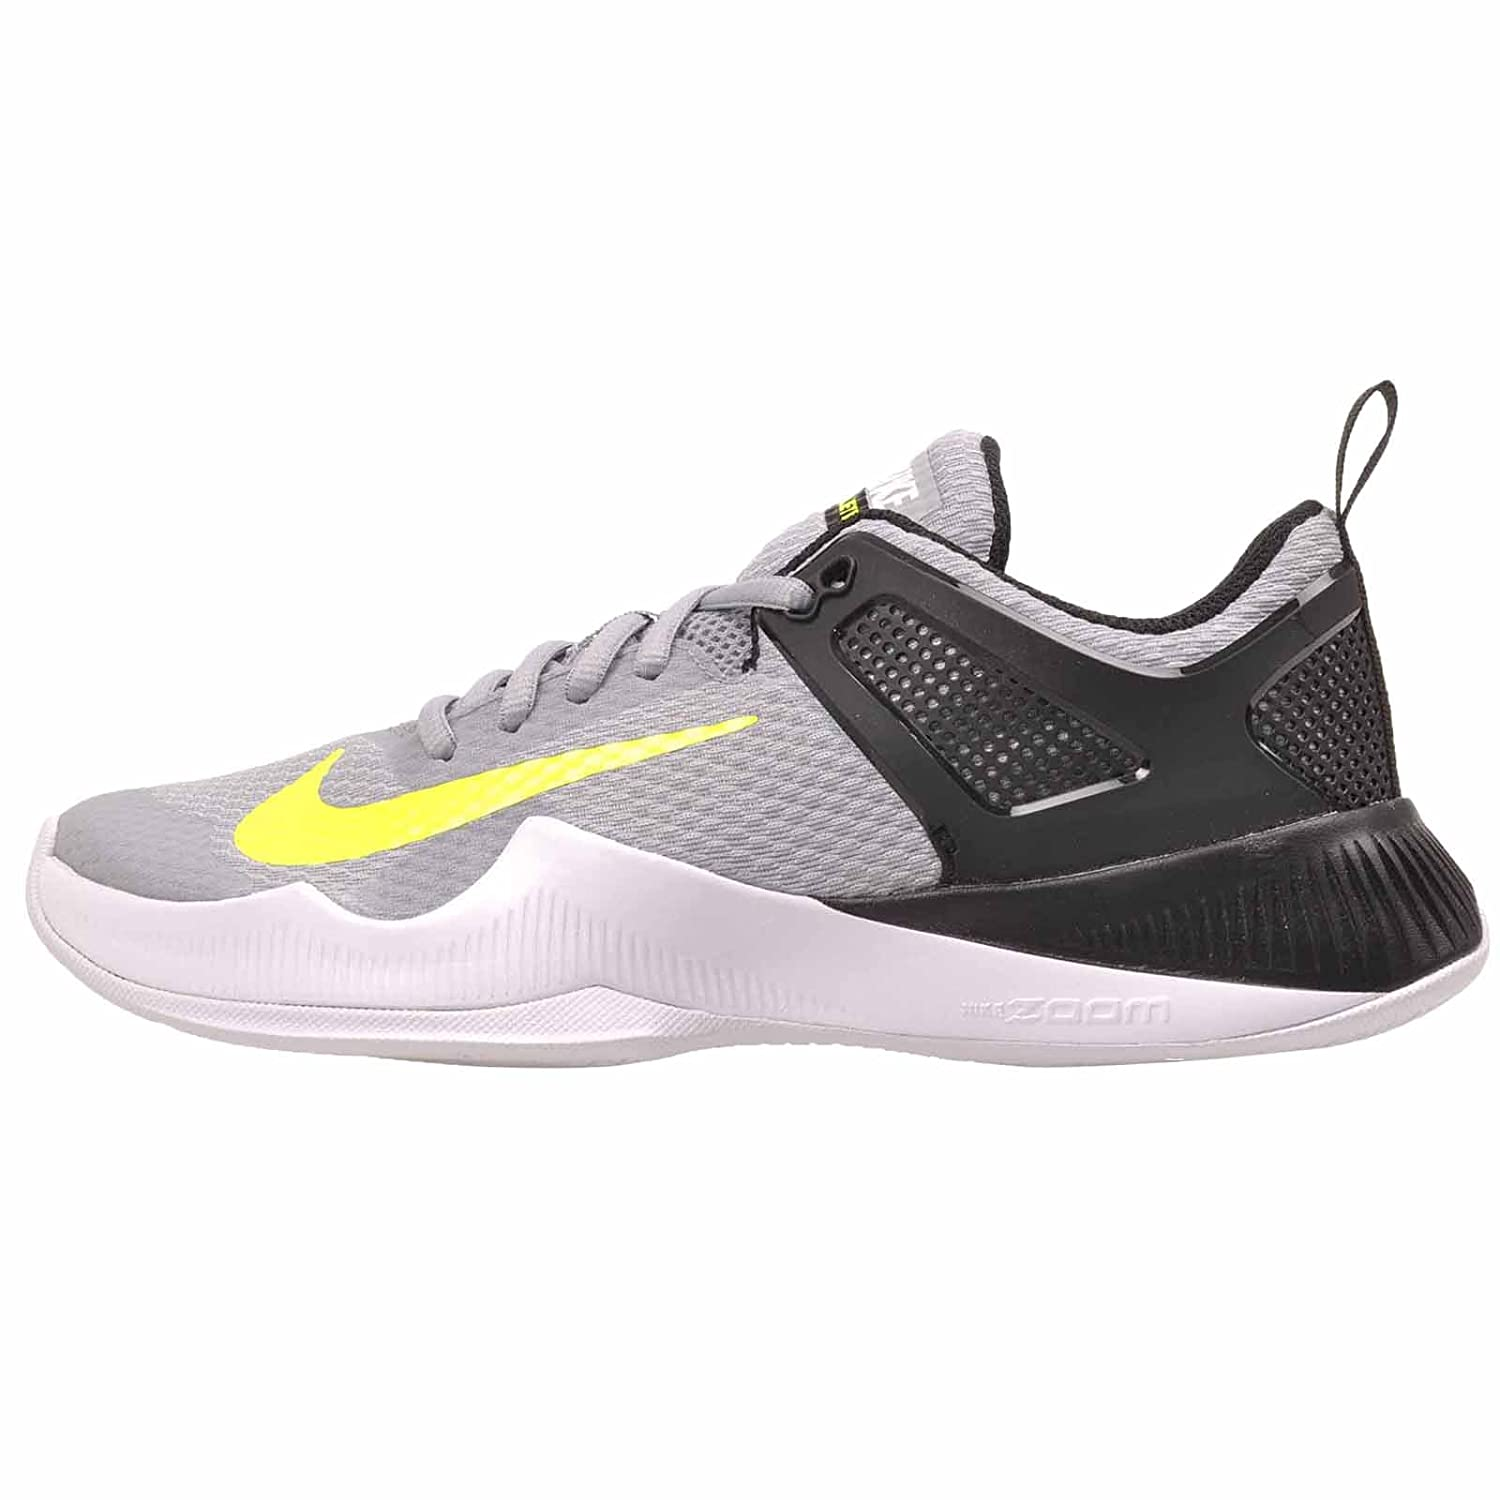 NIKE Women's Air Zoom Hyperace Volleyball Shoes B01LPSUJAQ 7 B(M) US|Wolf Grey/Volt-black